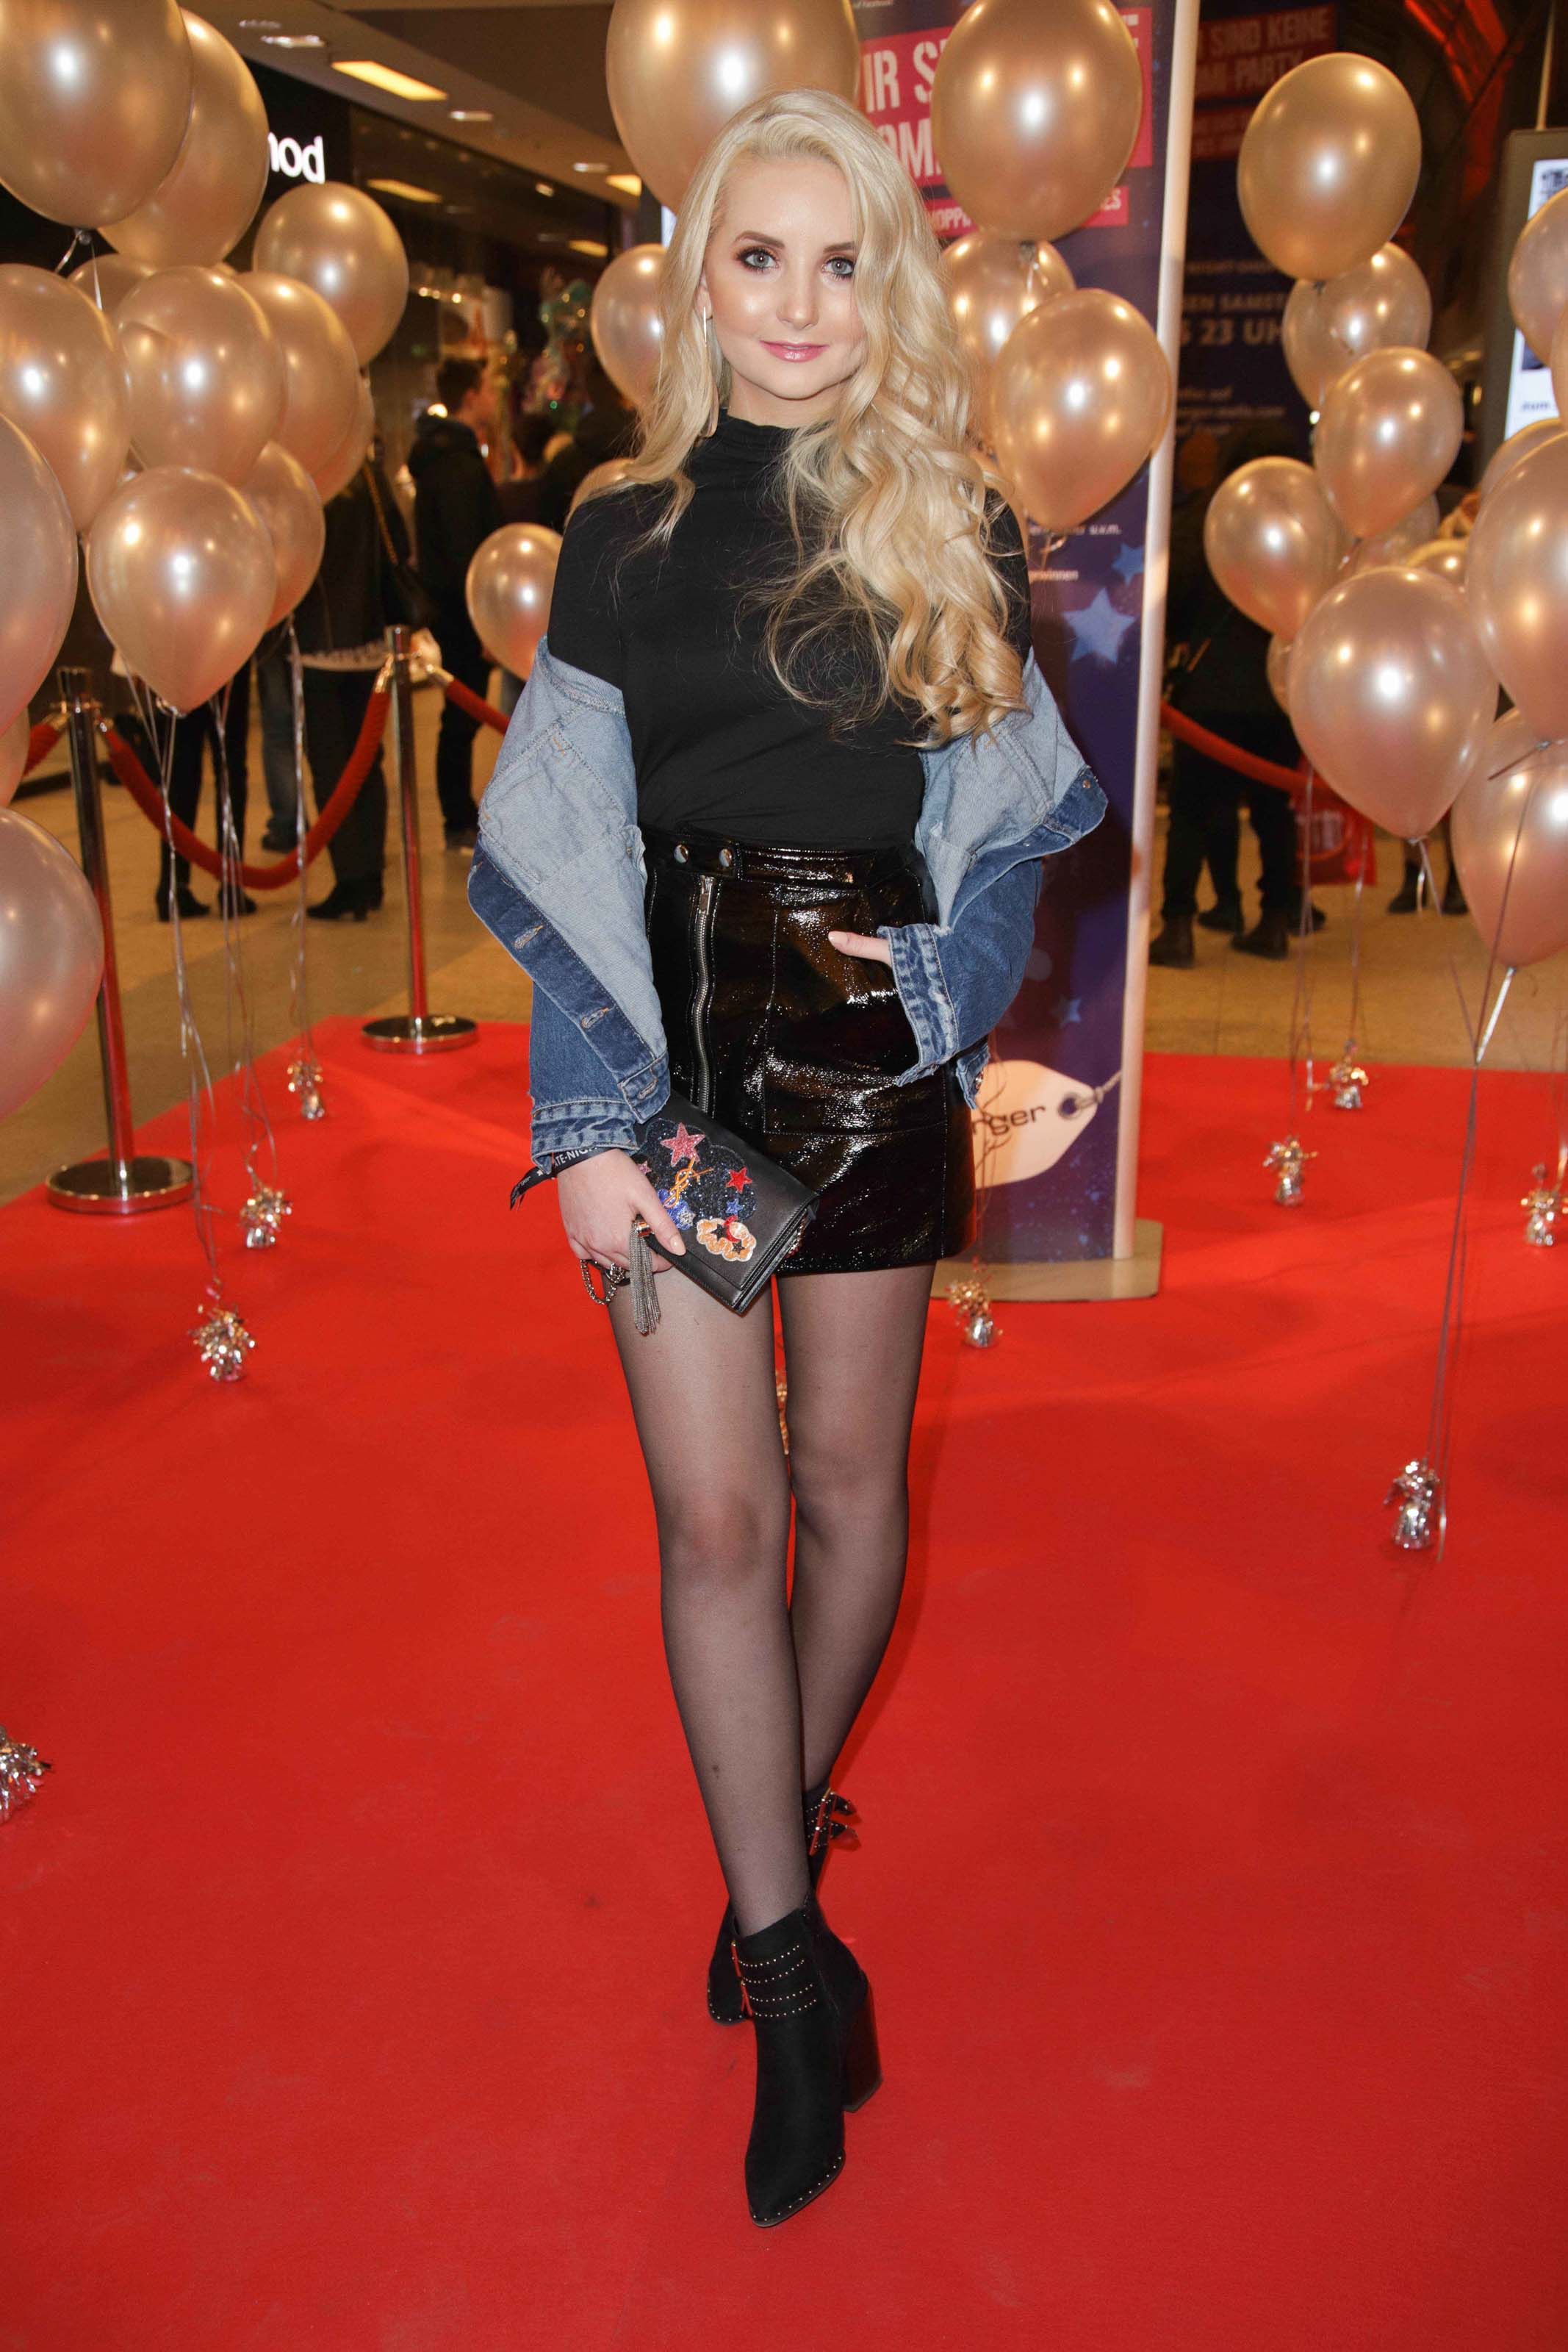 Anna Hiltrop at Late Night Shopping Party